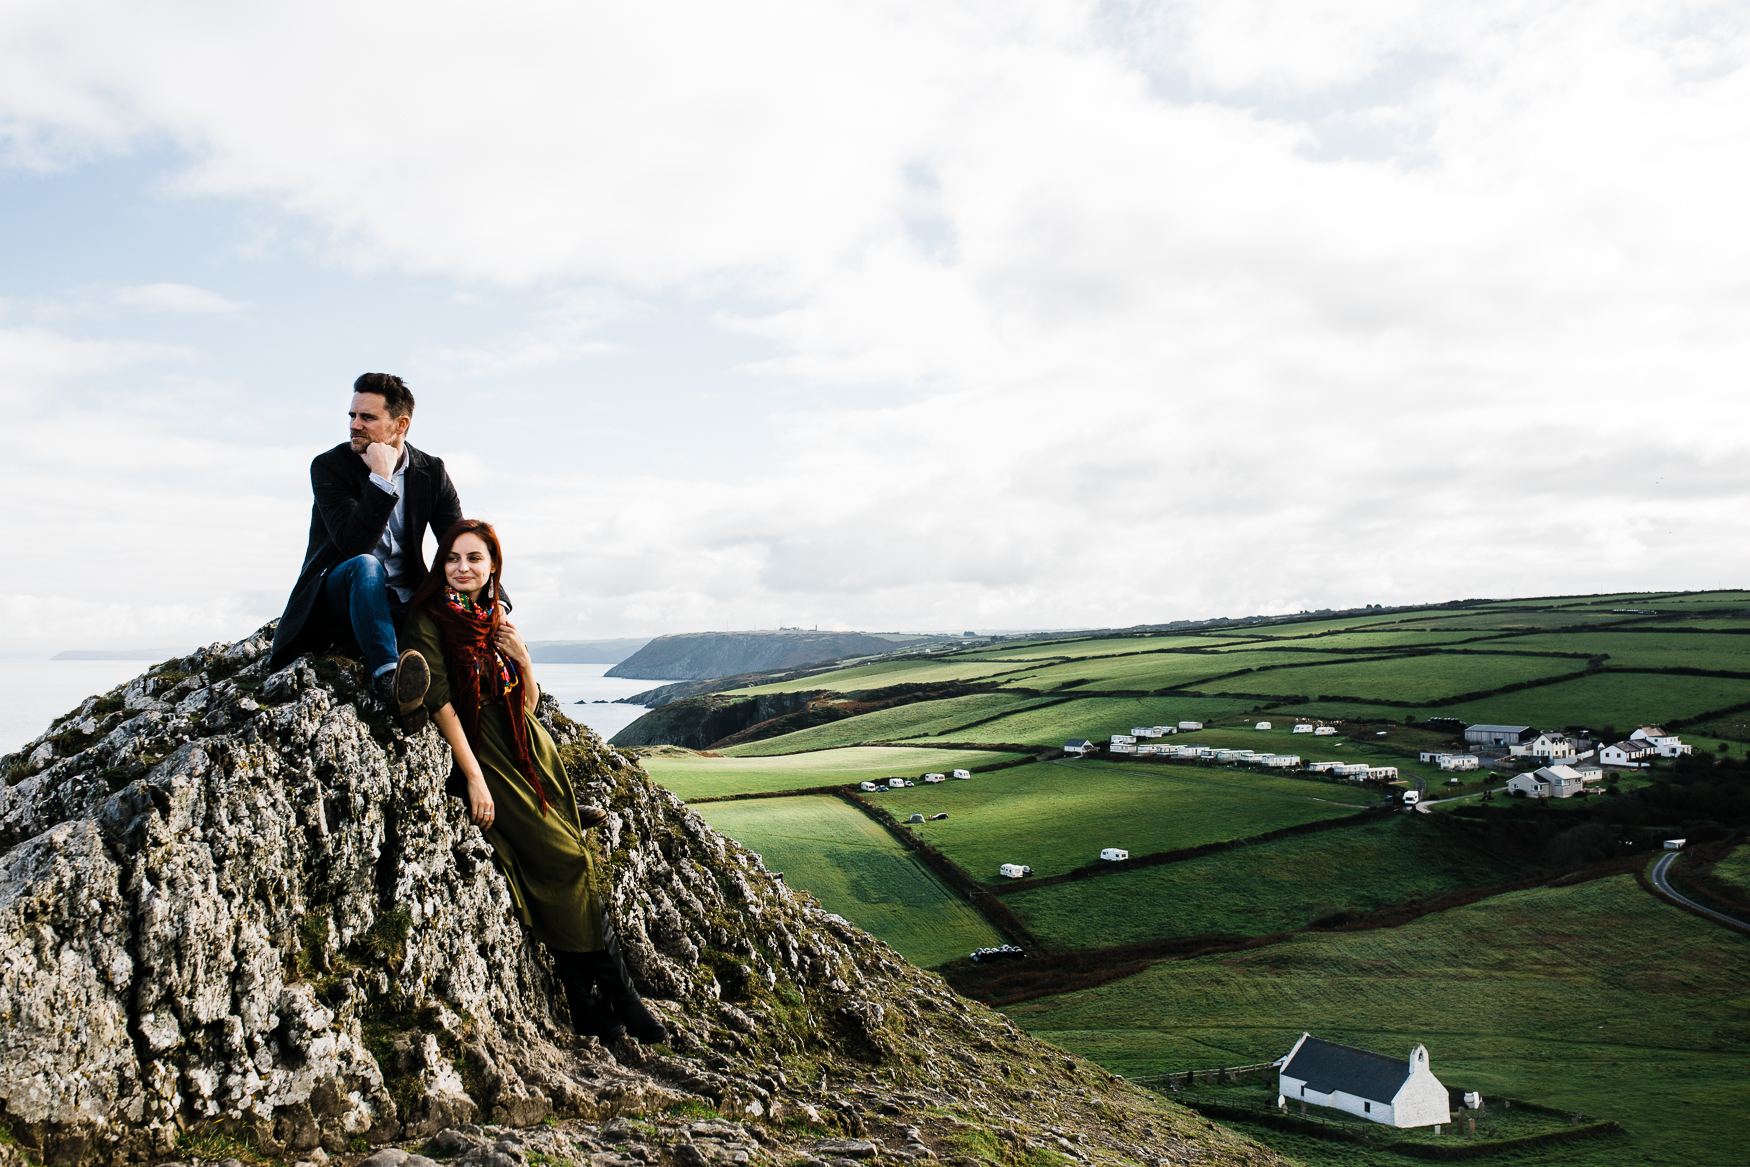 Alex_Sedgmond_Ailsa & Neal- Prewedding-17.JPG